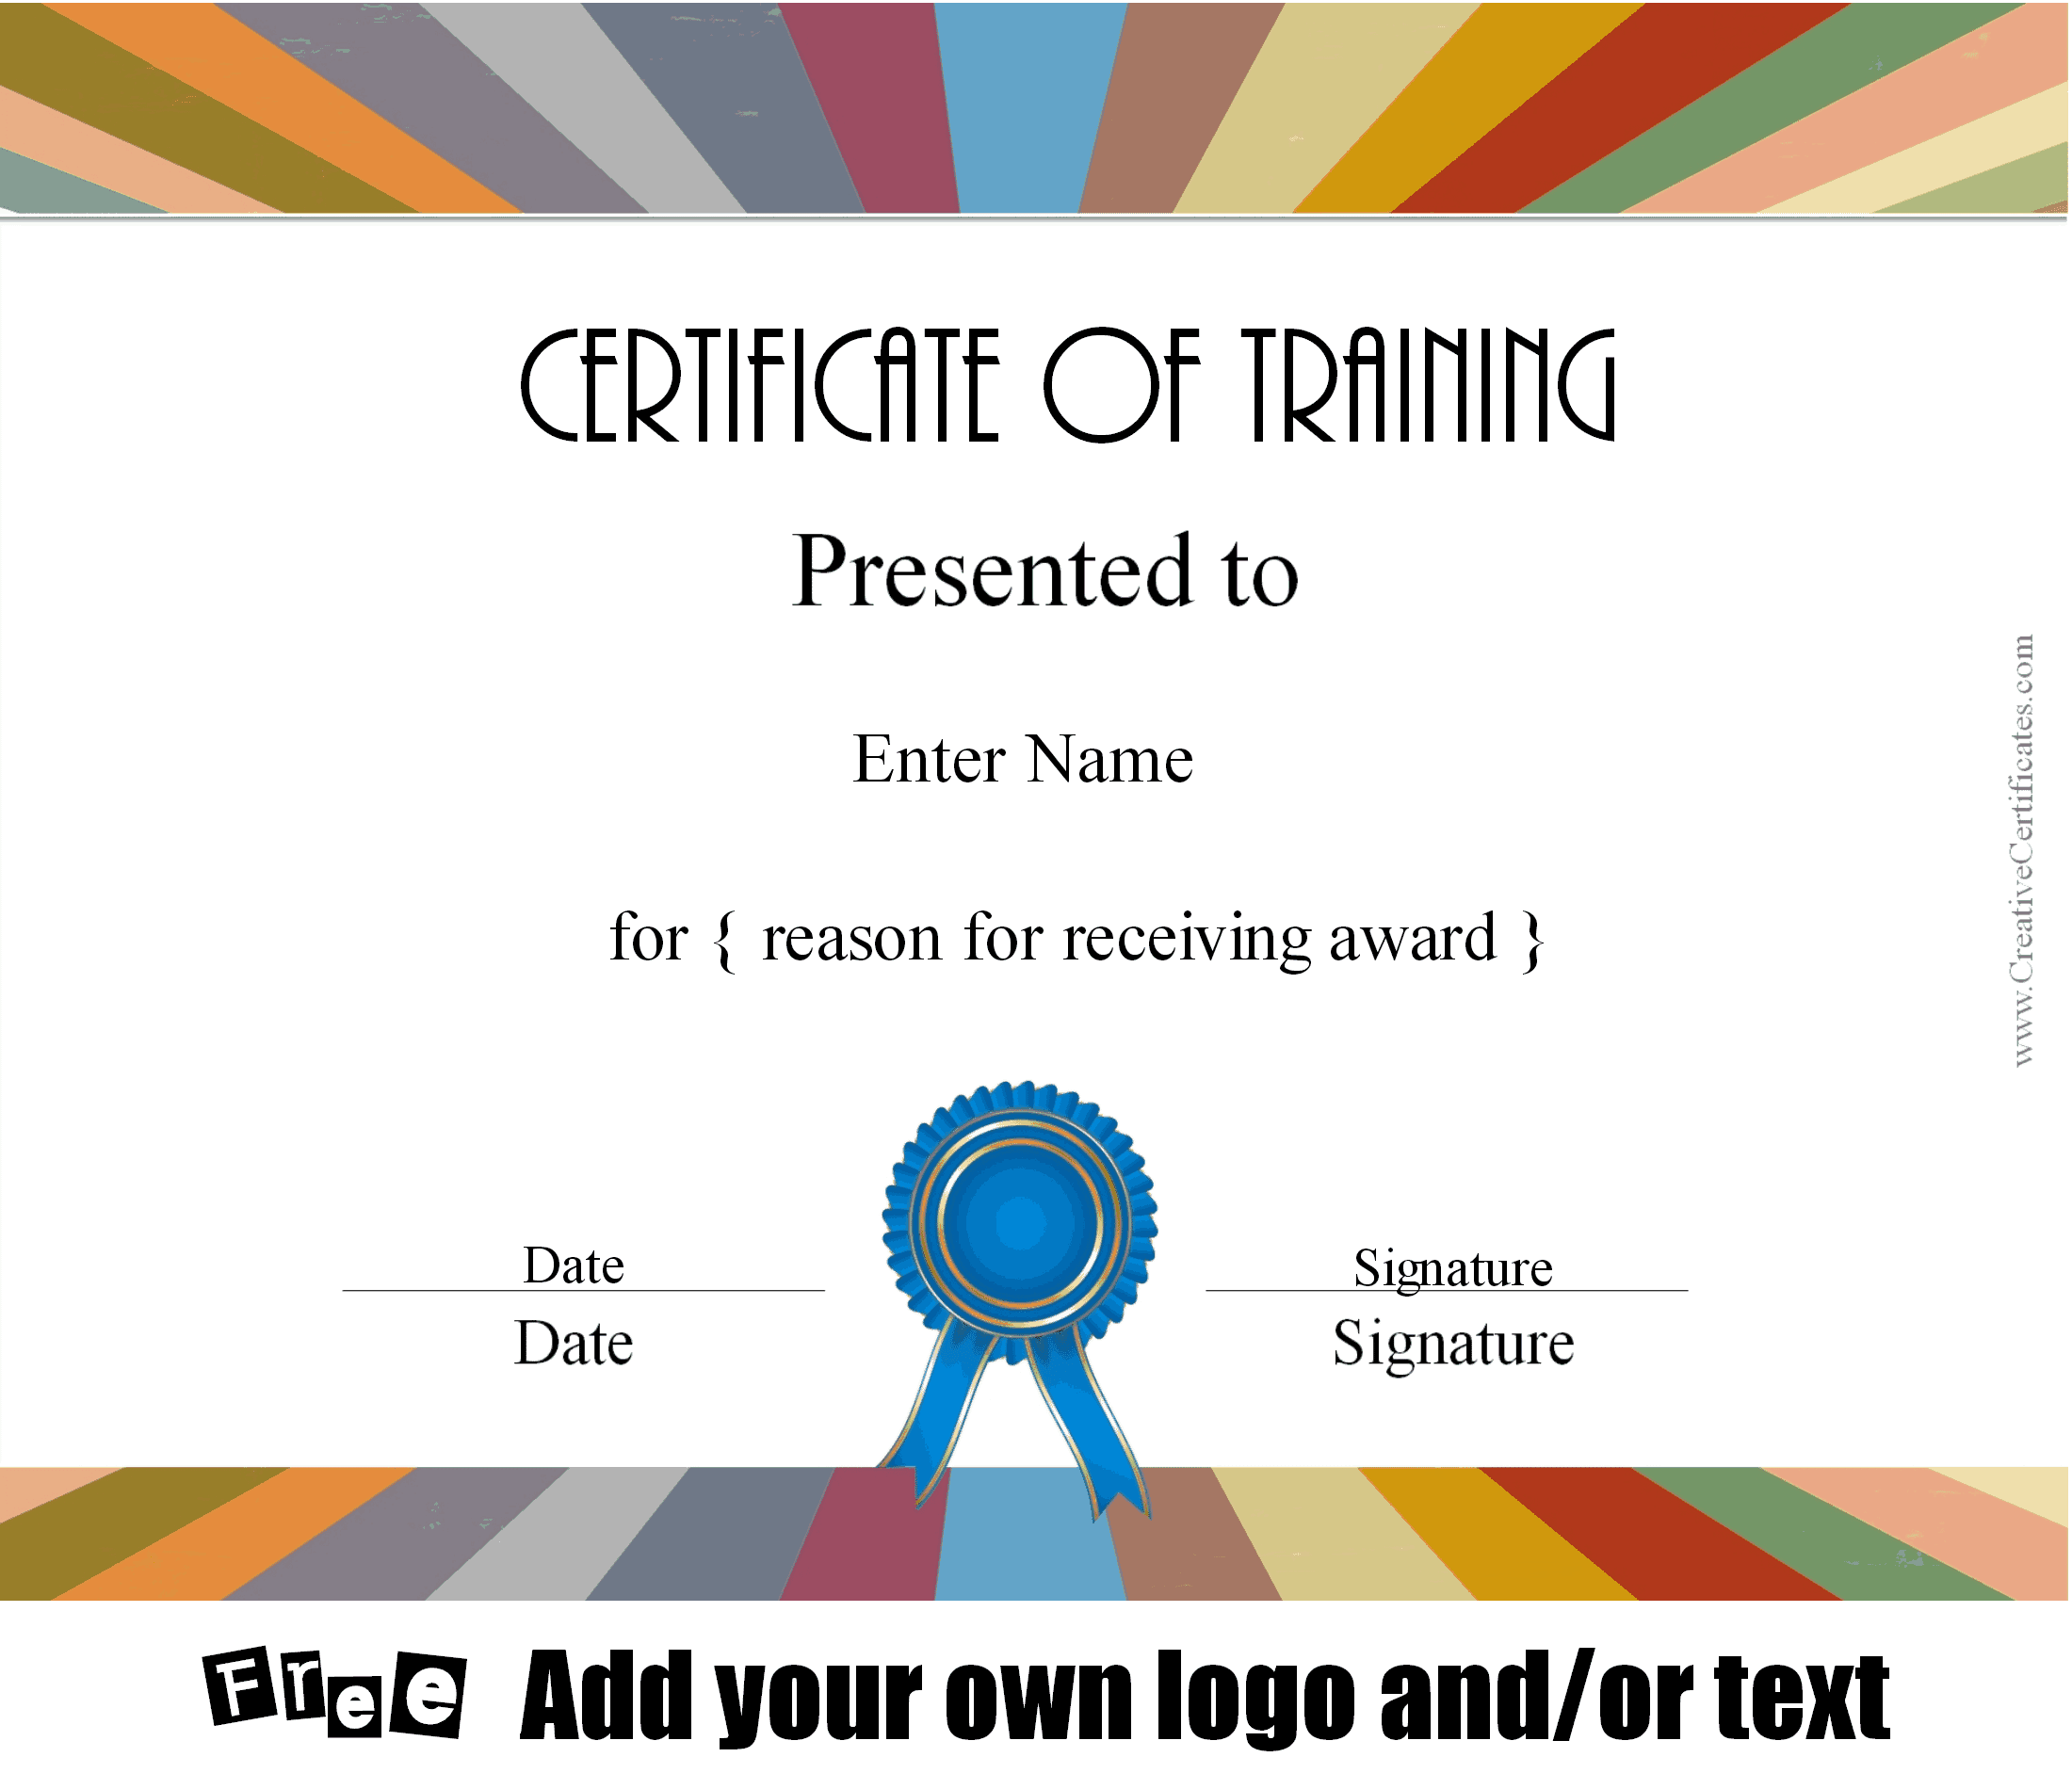 Free certificate of training template customizable diploma for training course yadclub Images